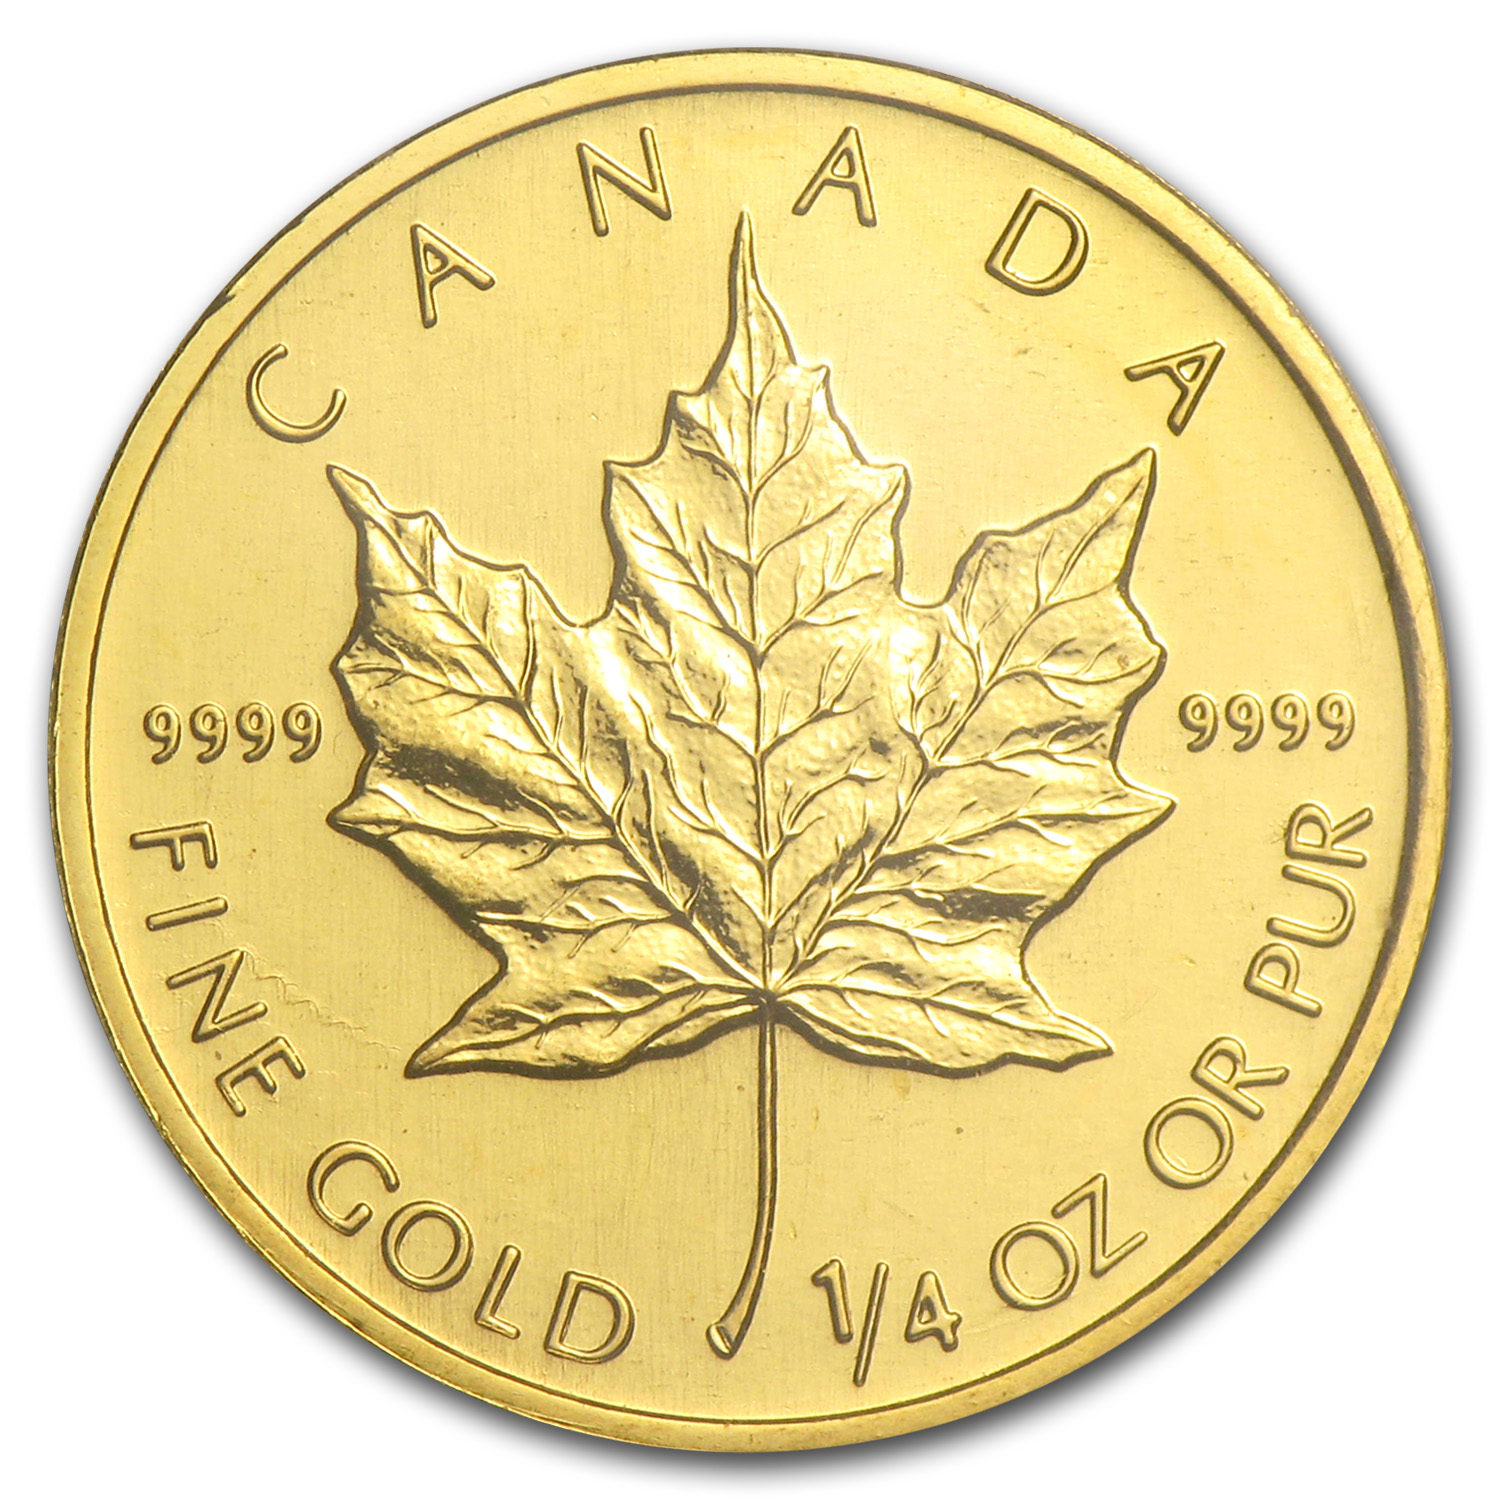 2001 Canada 1/4 oz Gold Maple Leaf BU